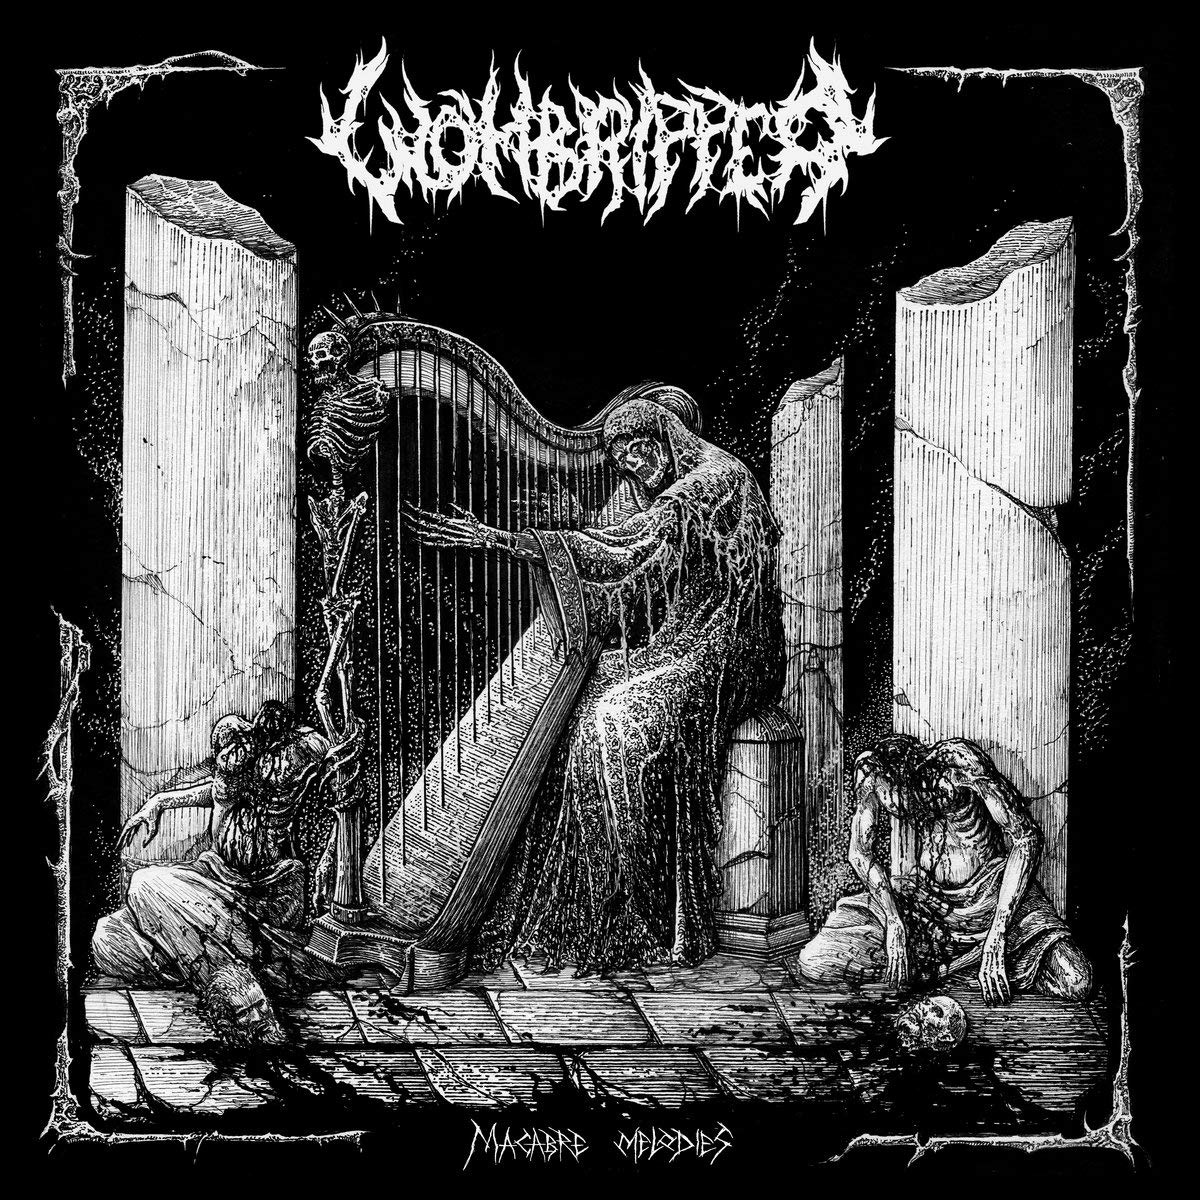 WOMBRIPPER - MACABRE MELODIES (CD)